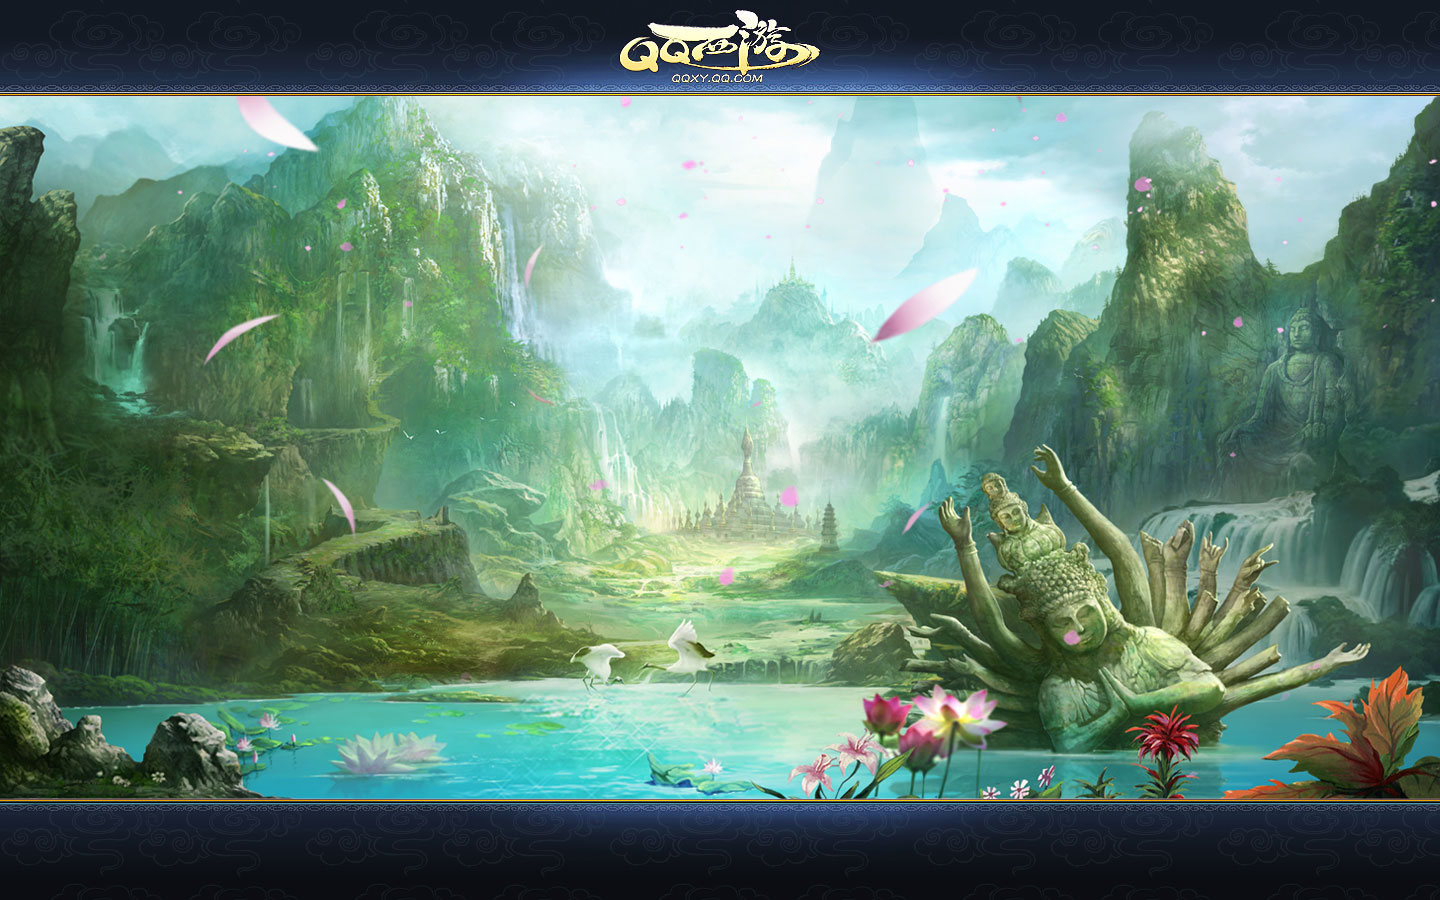 QQ Journey Official Wallpaper 30161